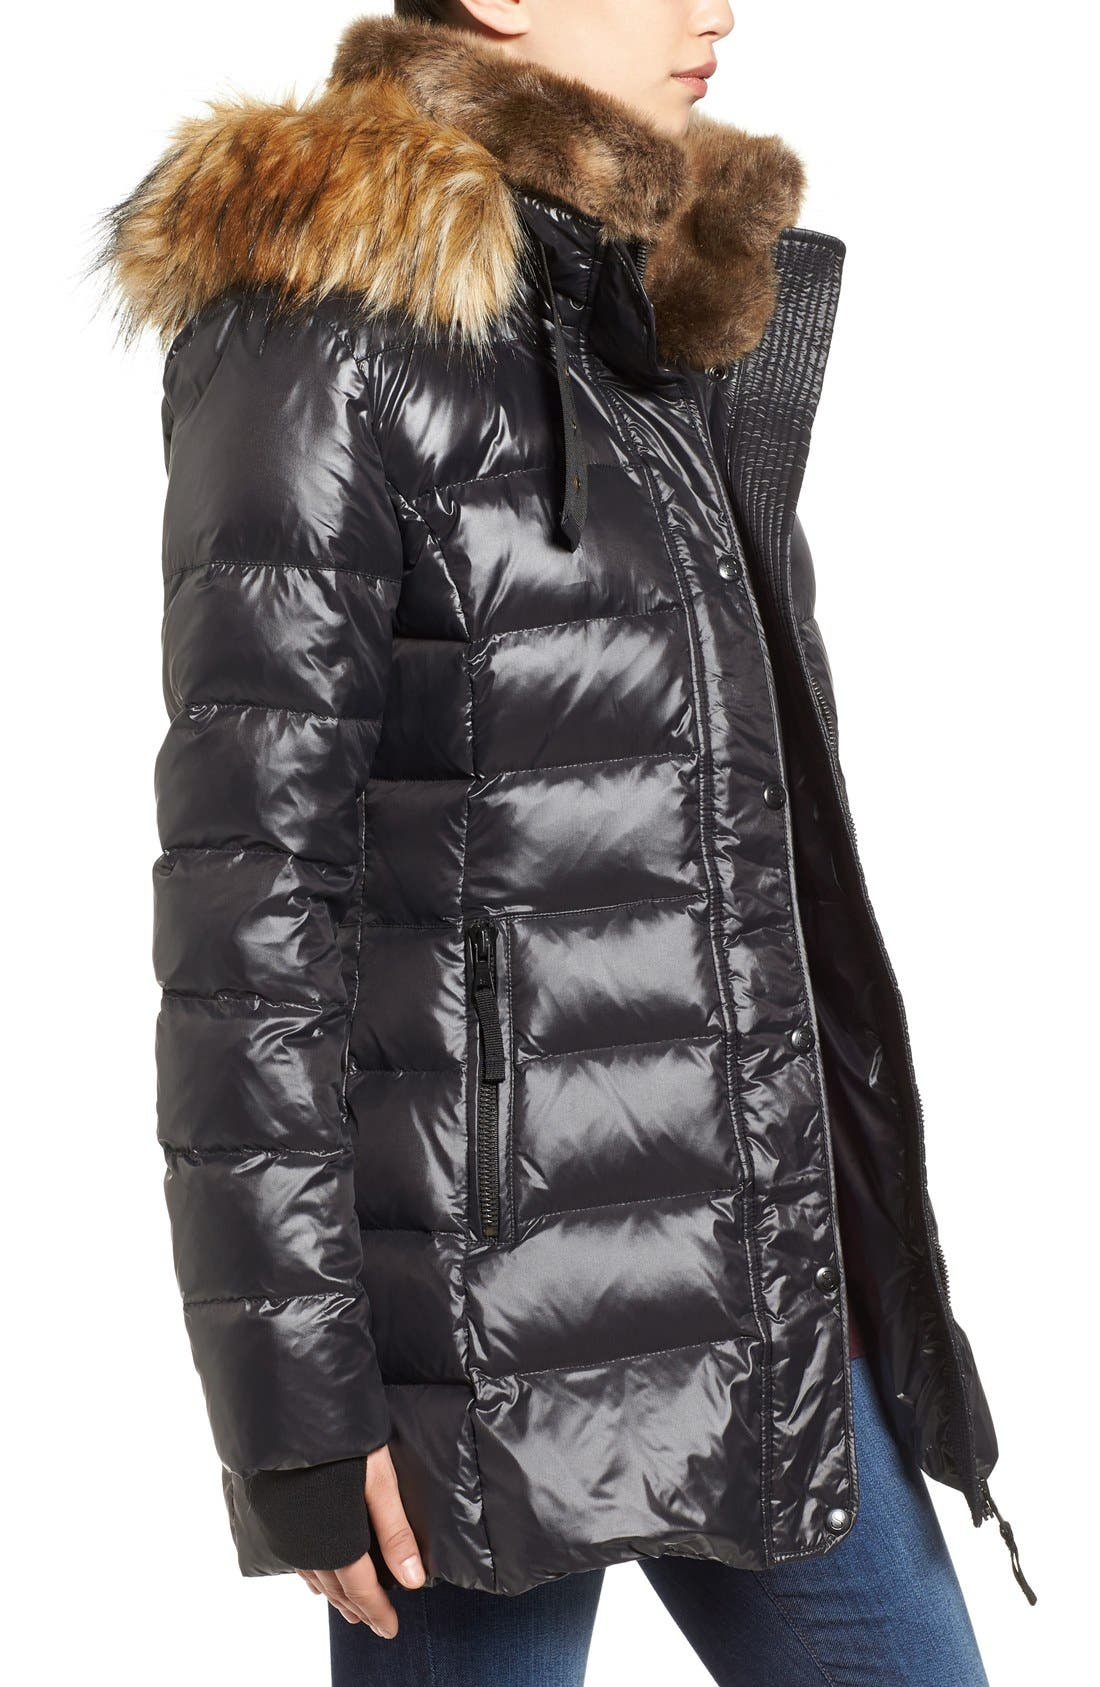 'Chelsea' Gloss Down Jacket with Removable Hood and Faux Fur Trim,                             Alternate thumbnail 3, color,                             Jet